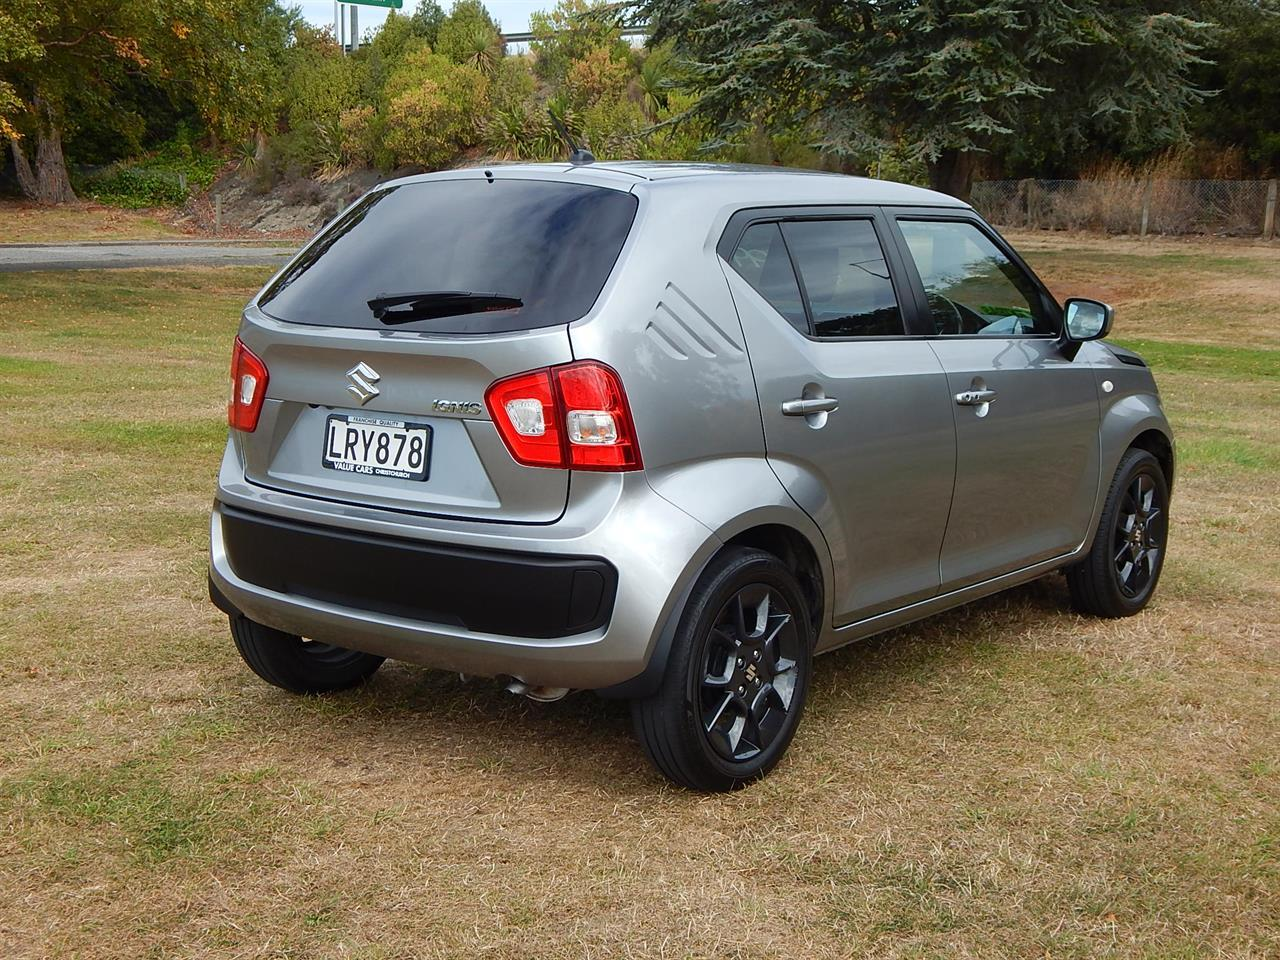 image-1, 2017 Suzuki IGNIS LTDC 1.2P/CVT at Christchurch